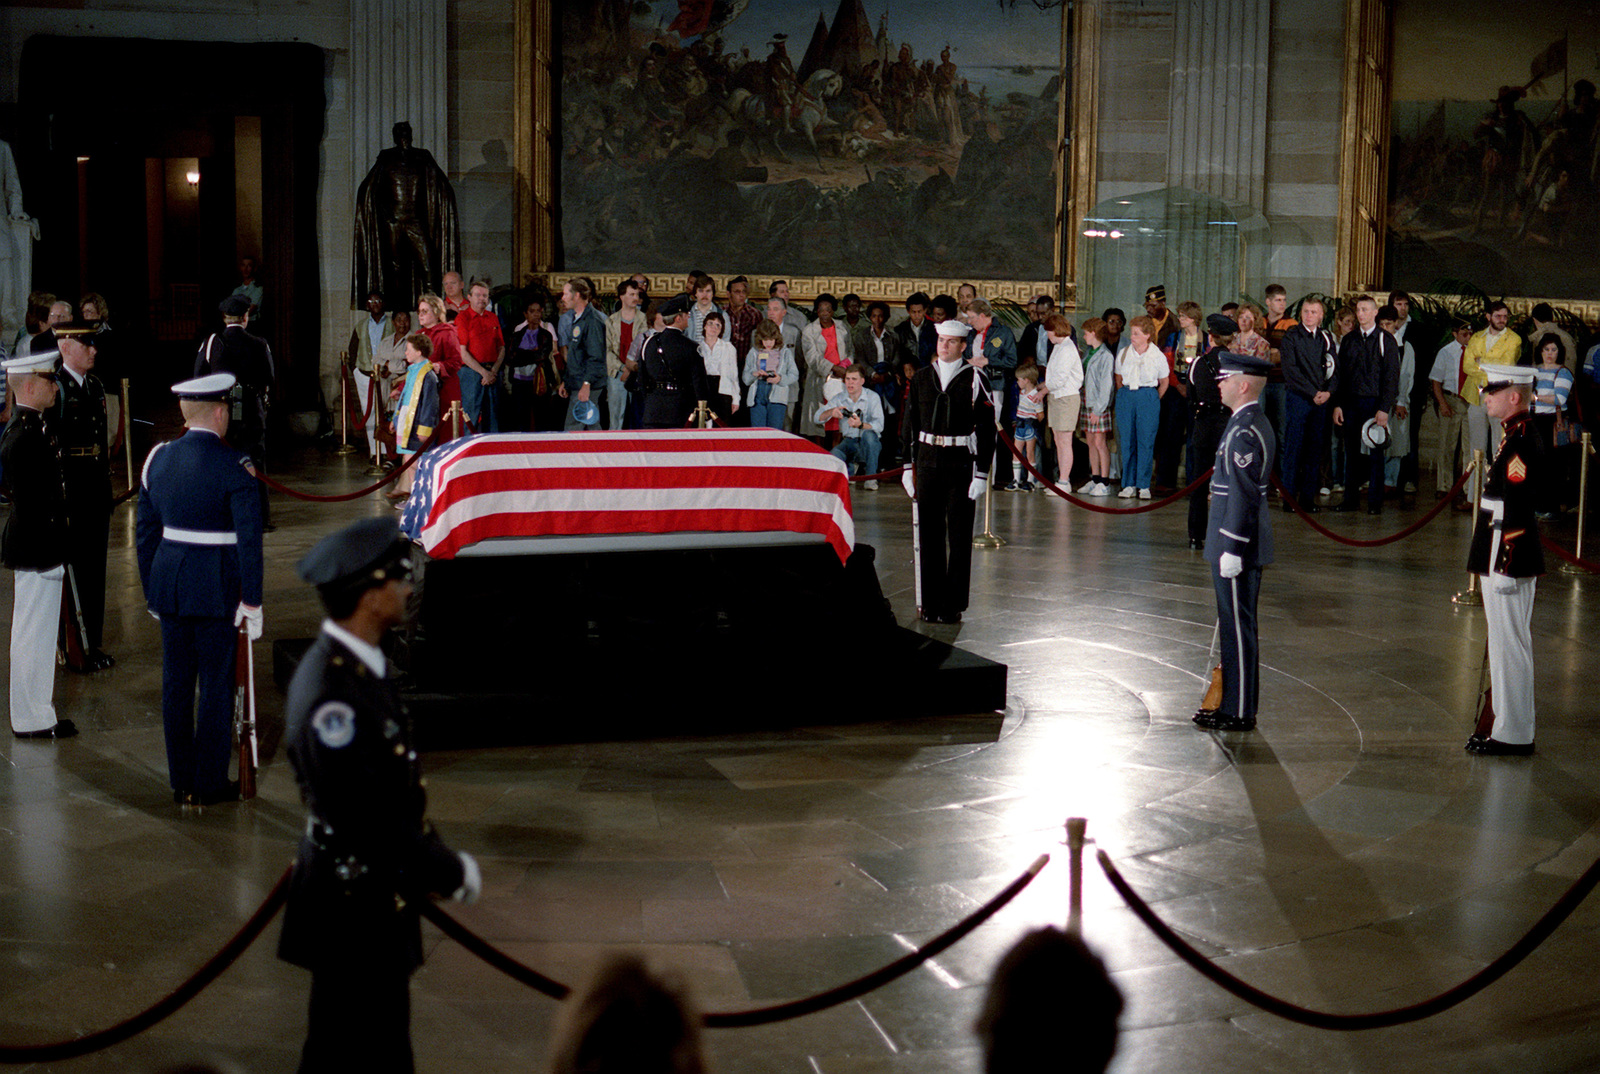 The Unknown Serviceman of the Vietnam Era lies in state in the Capitol rotunda. The serviceman will be taken to Arlington National Cemetery for a state funeral service and interment at the Tomb of the Unknowns